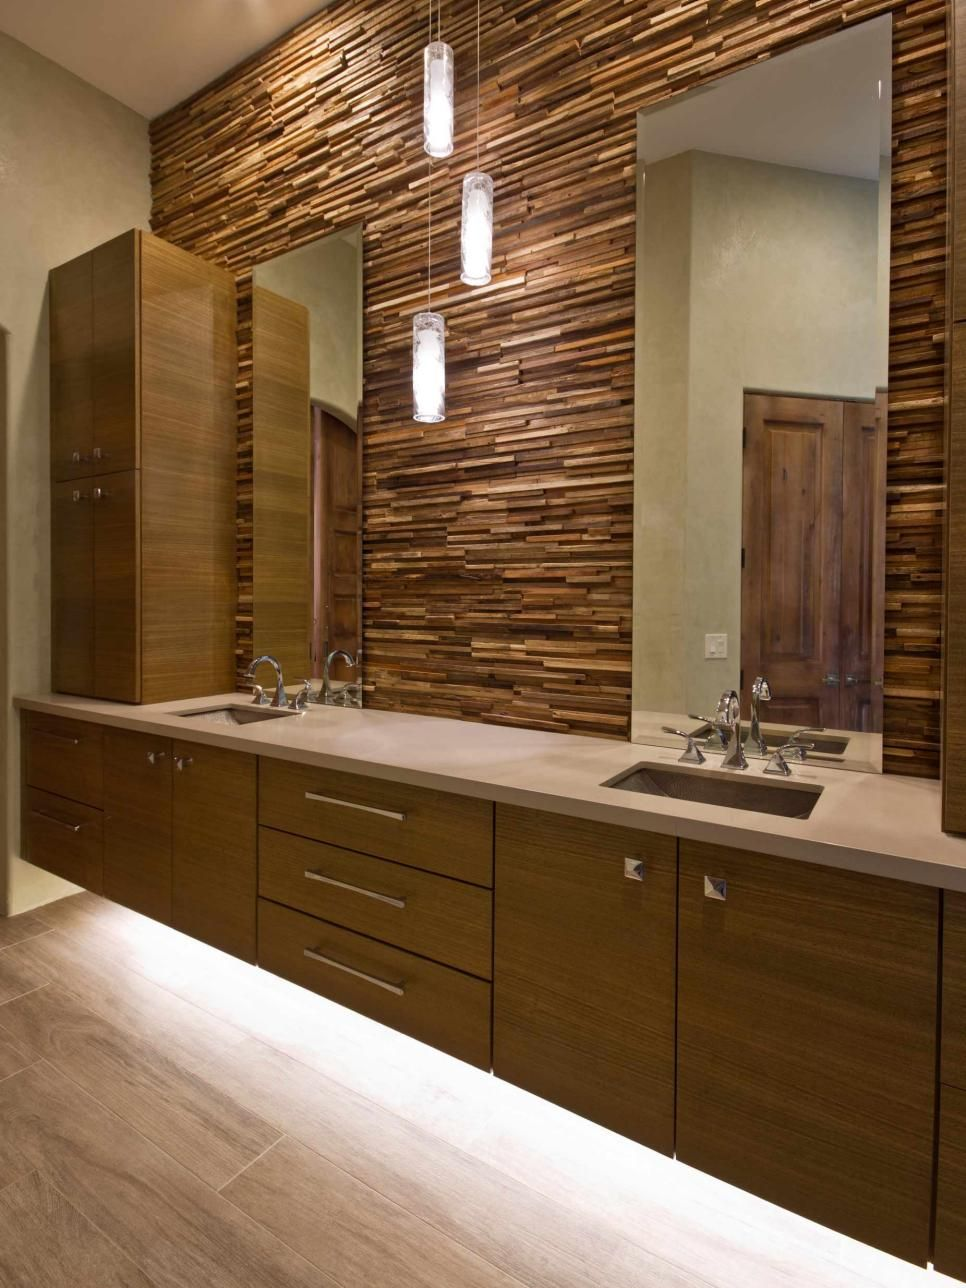 Floating Vanity Cabinets with Lighting Underneath Bathrooms